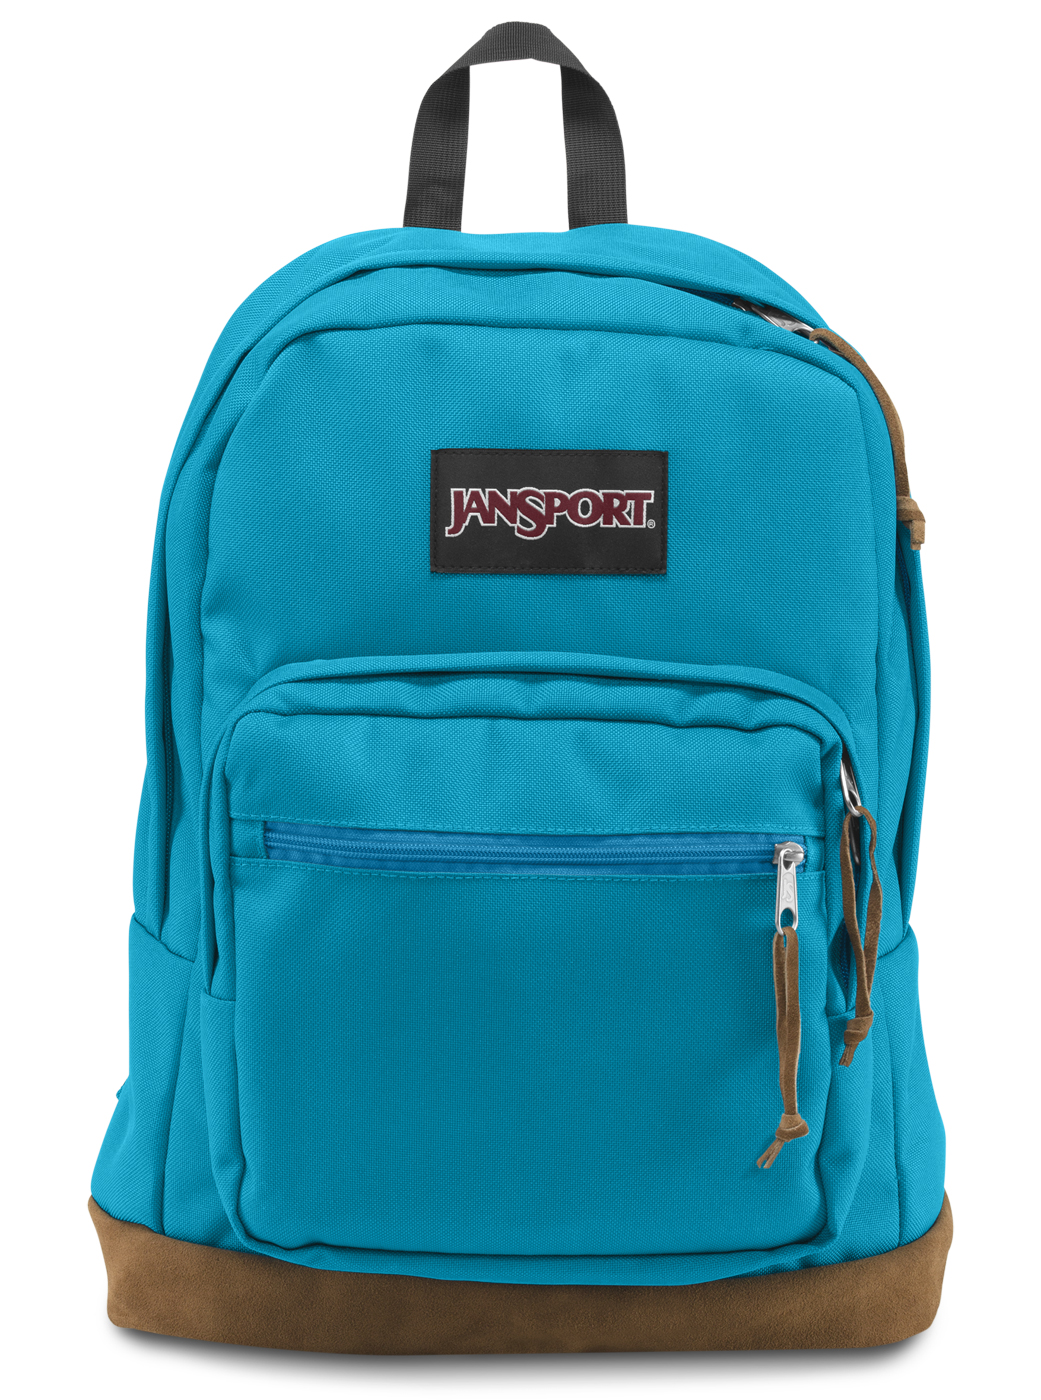 How Much Do Jansport Backpacks Cost - Crazy Backpacks